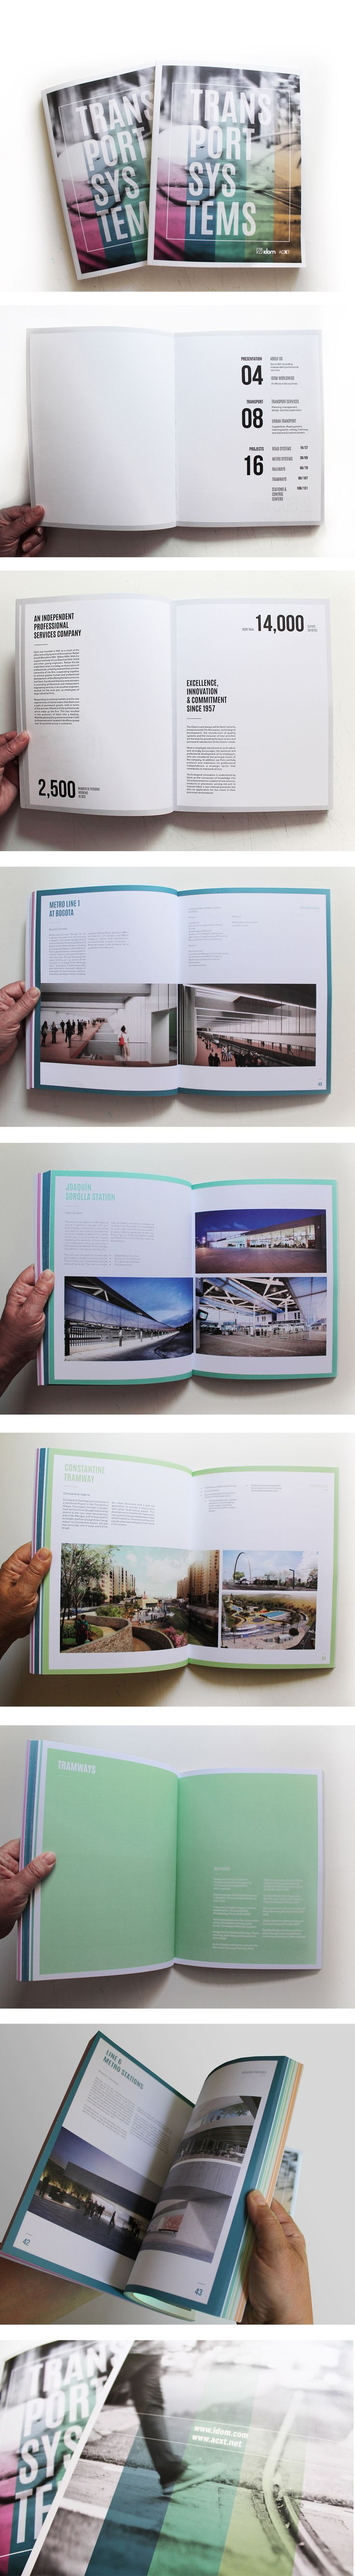 ARCHITECTURE  URBAN TRANSPORT SYSTEMS BOOK / MUAK